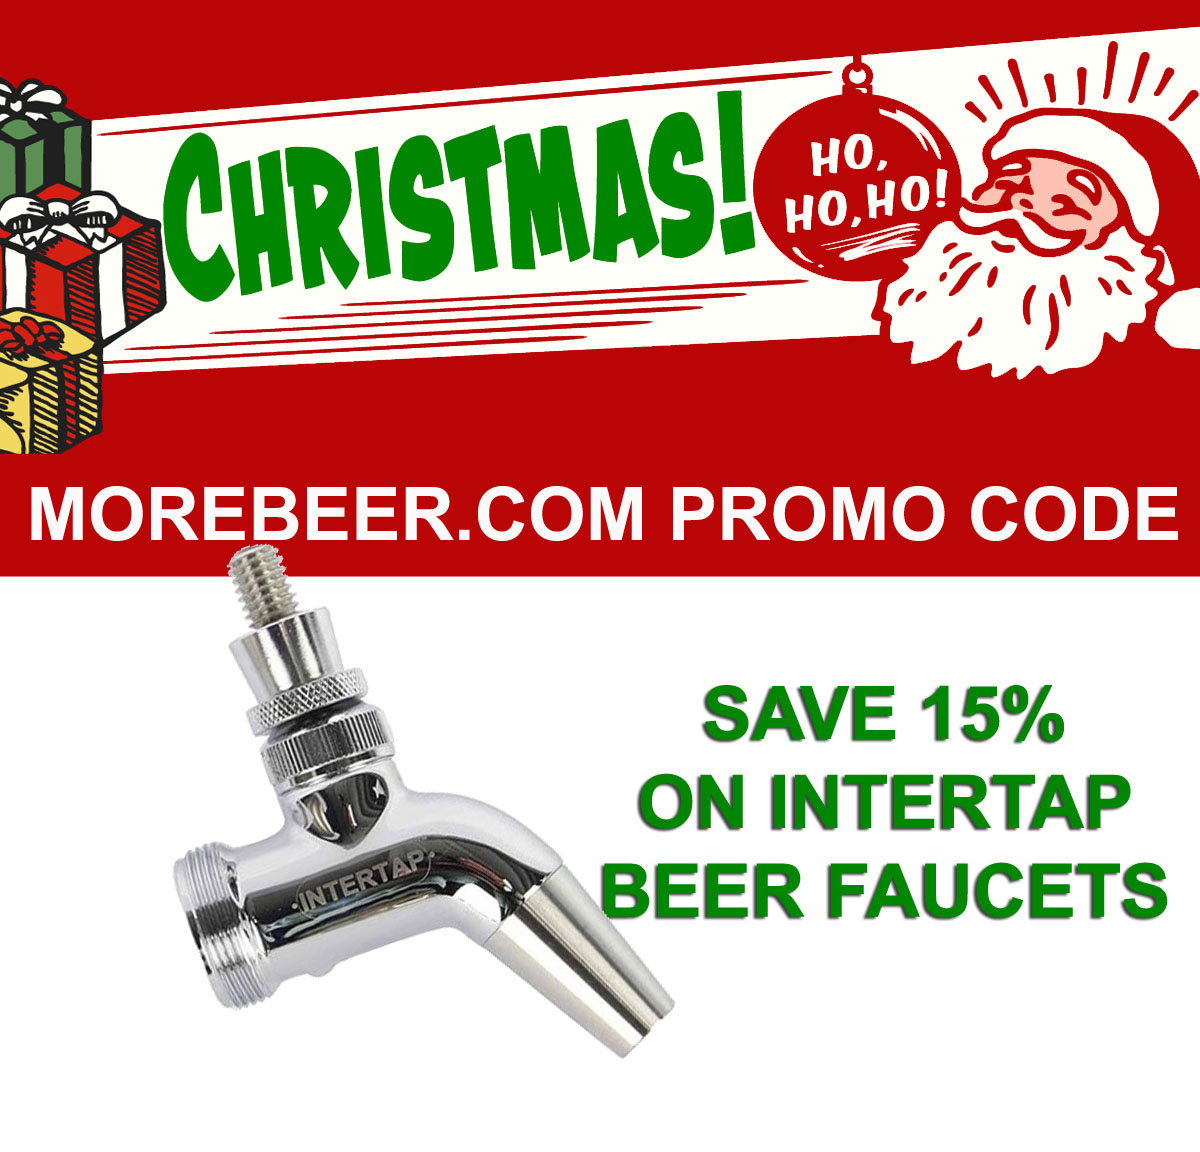 Morebeer morebeer.com Coupon Codes, Promo Codes, Promotions and Rebates